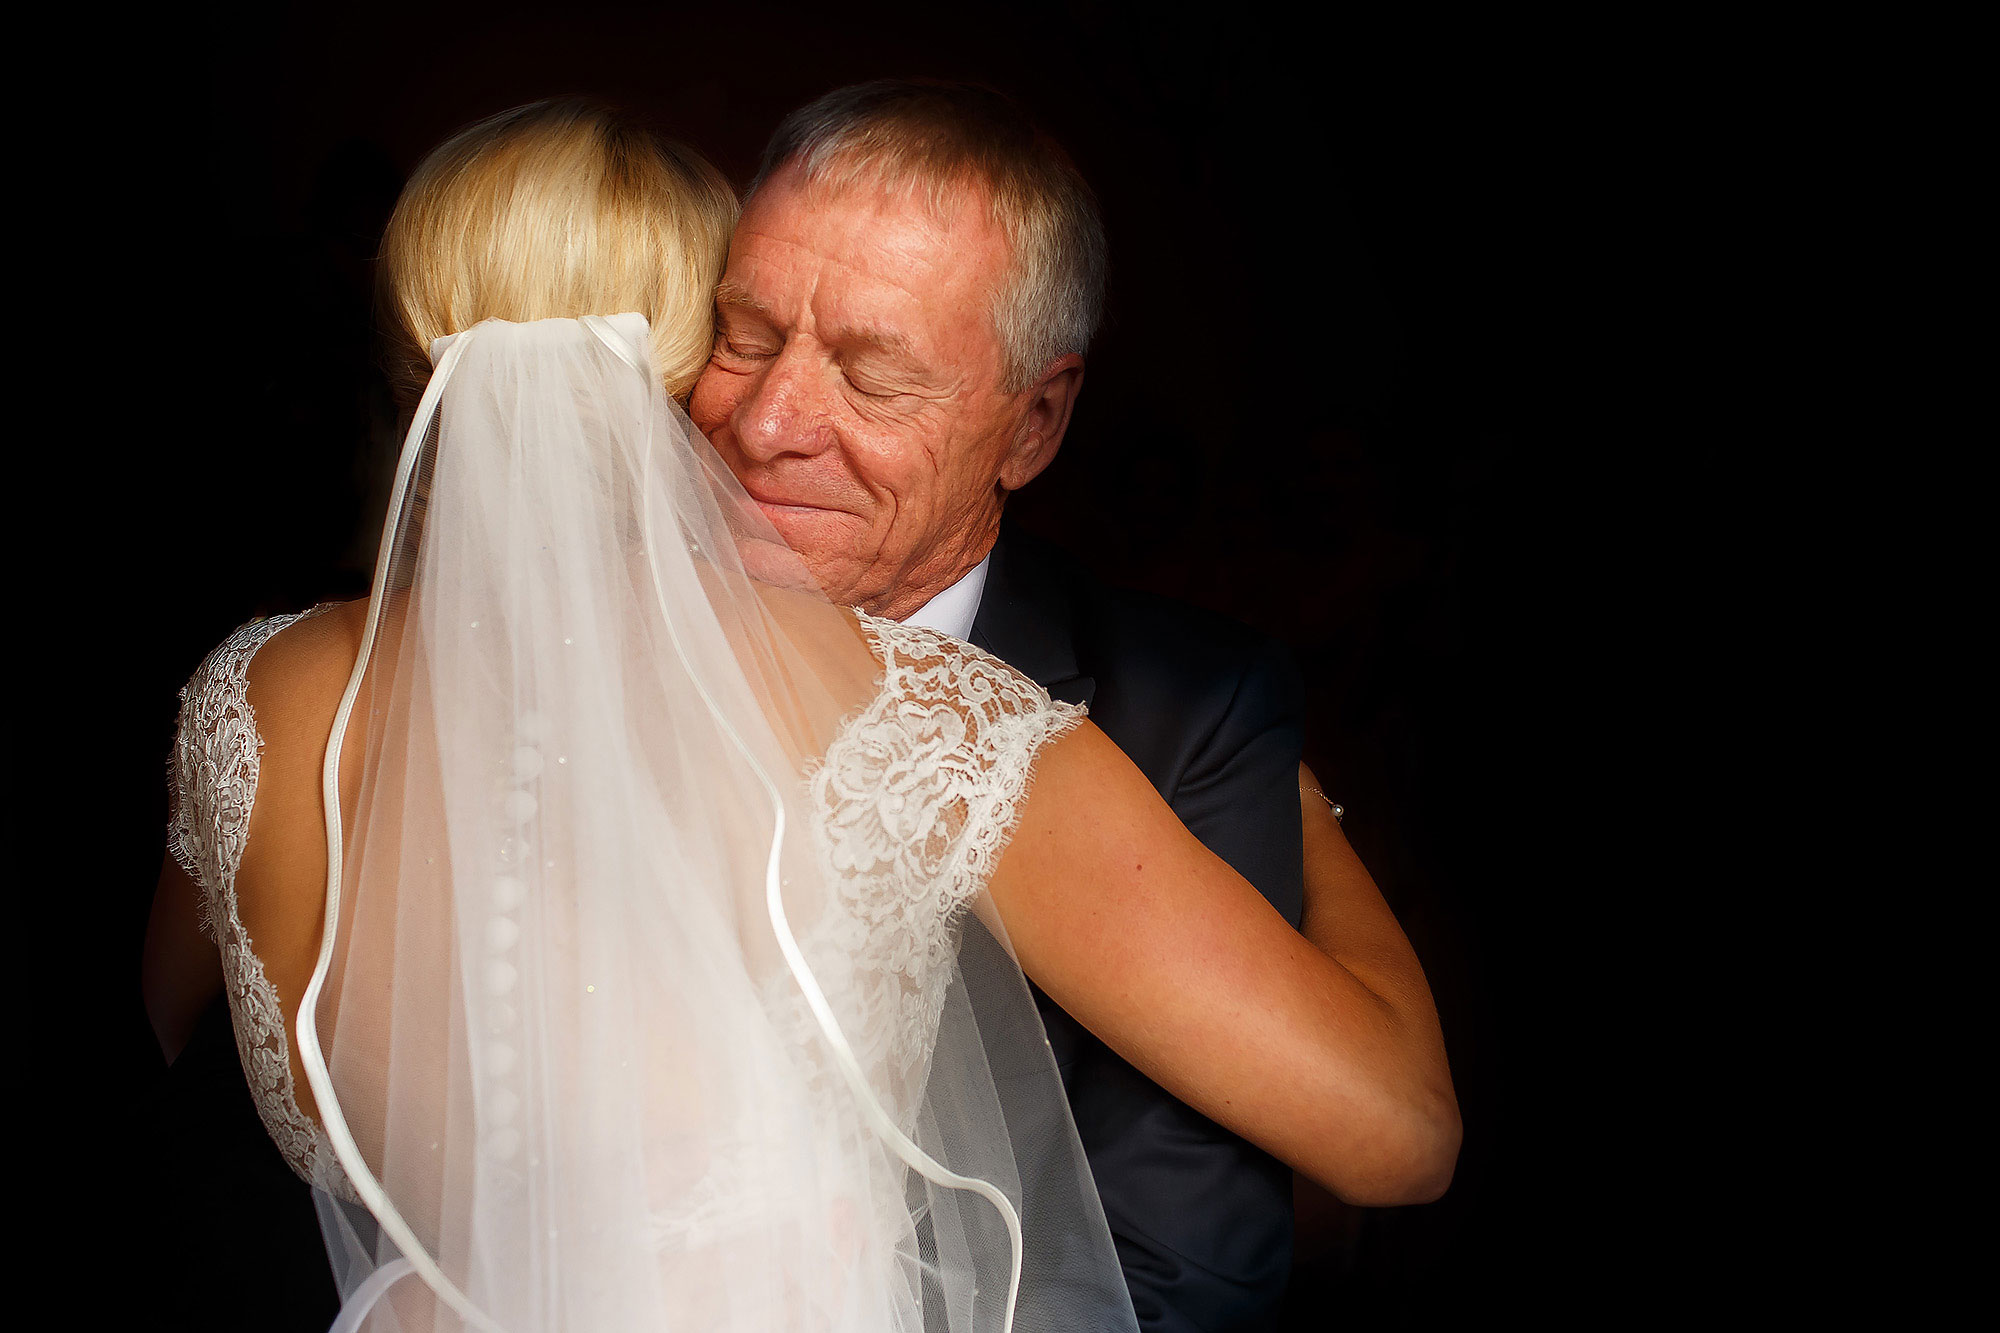 Bride with lace low back wedding dress wearing veil hugging father for the first time | Peckforton Castle Wedding by Toni Darcy Photography